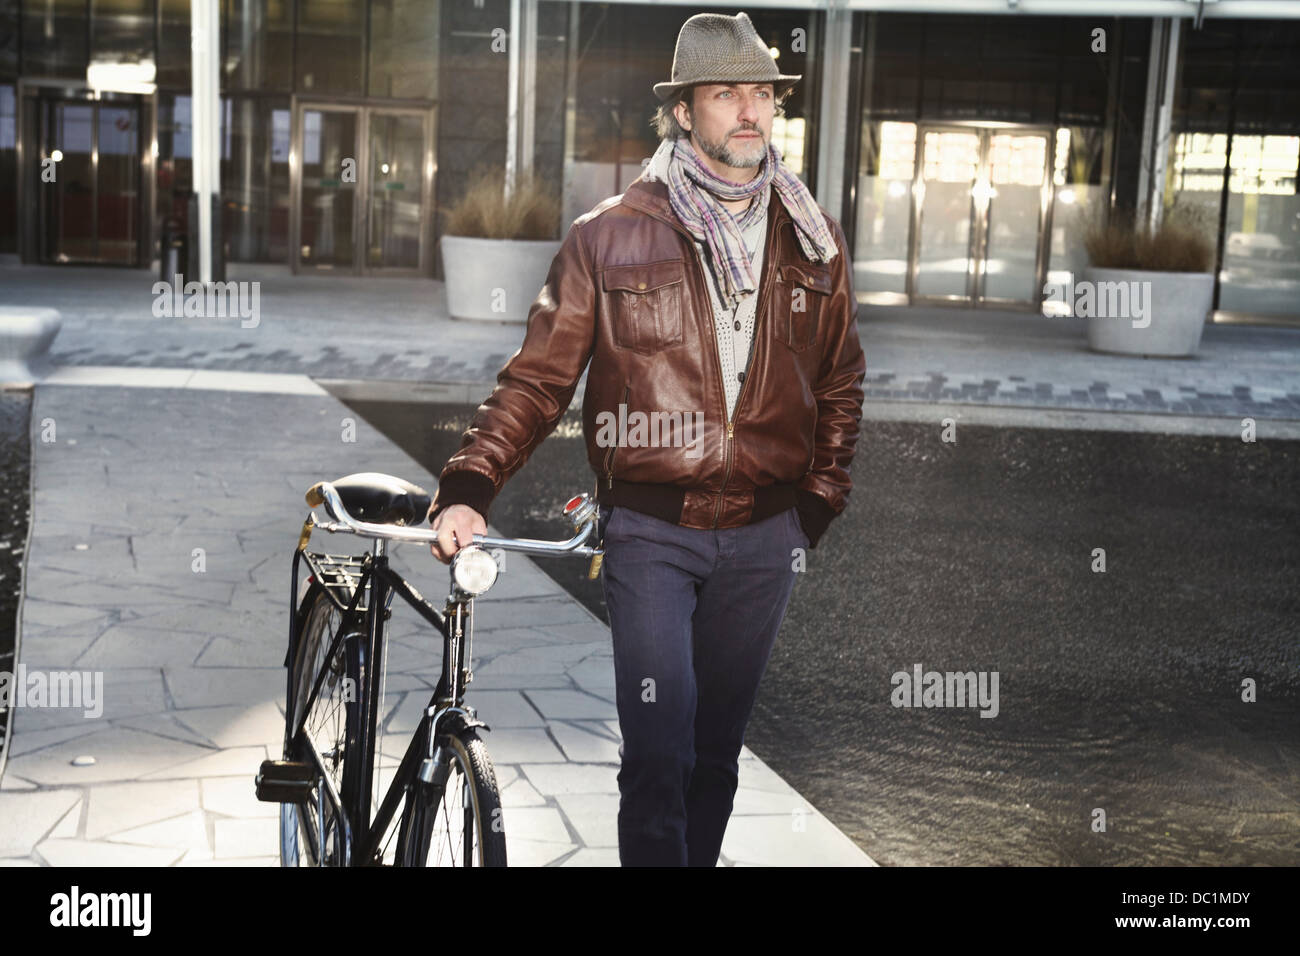 Mid adult man walking with bicycle in city - Stock Image